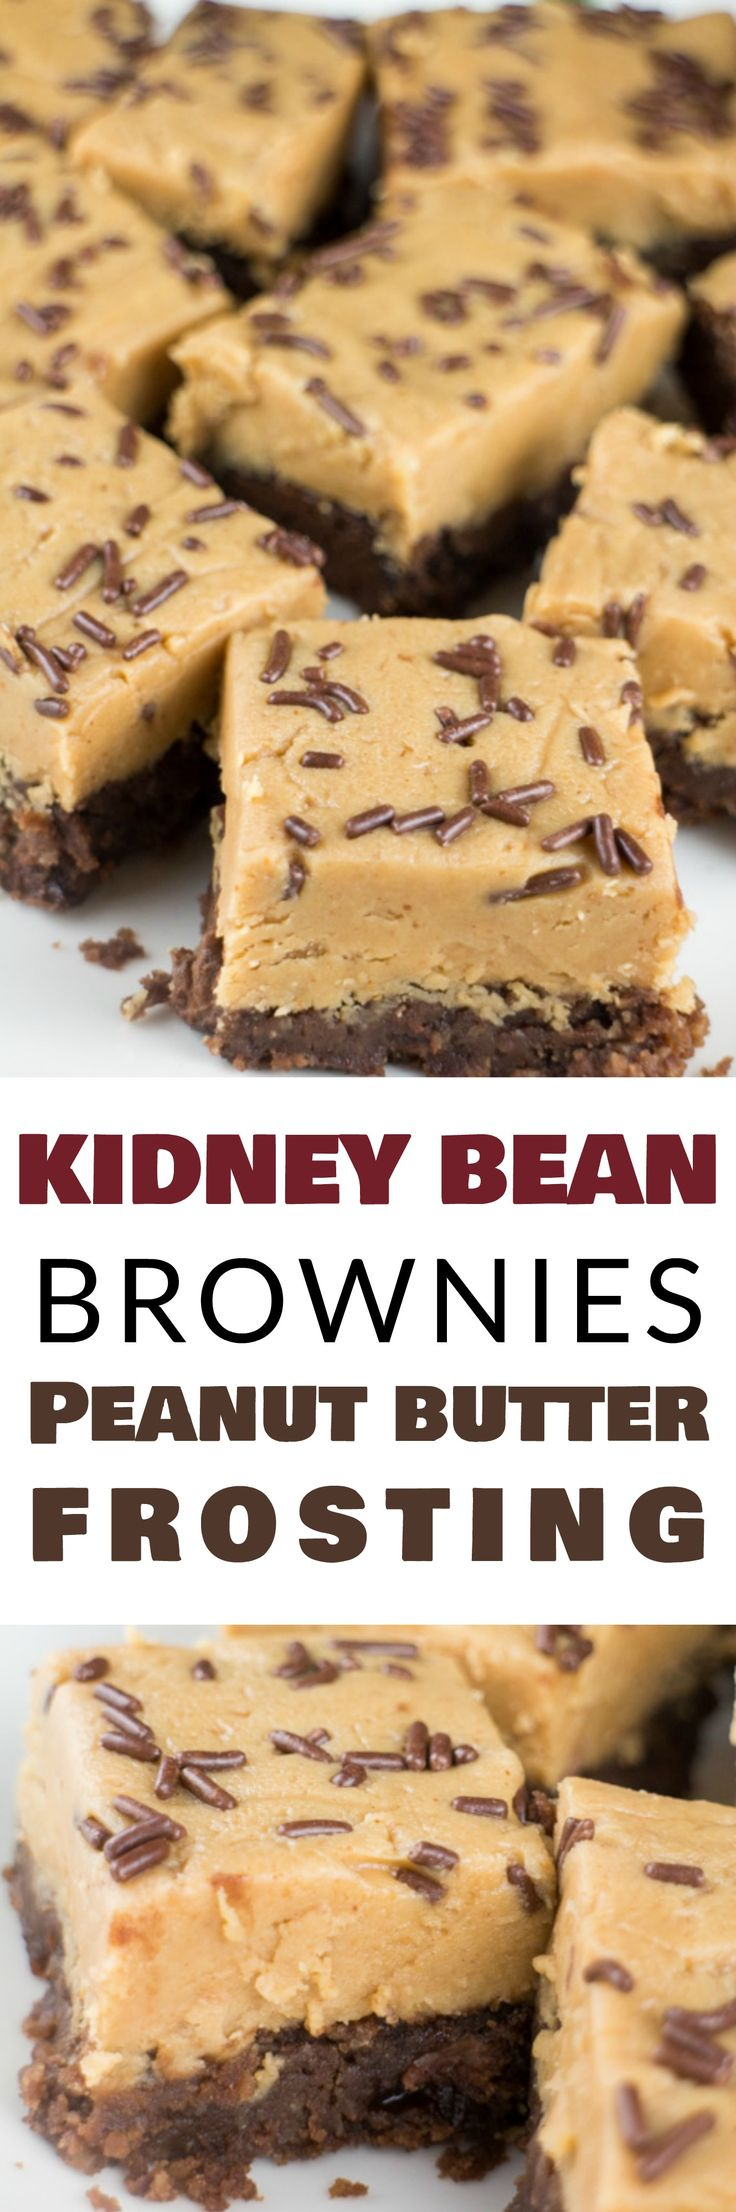 DELICIOUS CHOCOLATE Brownies made with KIDNEY BEANS! This healthy easy recipe makes brownies with kidney beans instead of butter and oil! They are topped with the BEST peanut butter frosting! Easy to make them completely gluten free and vegan too!